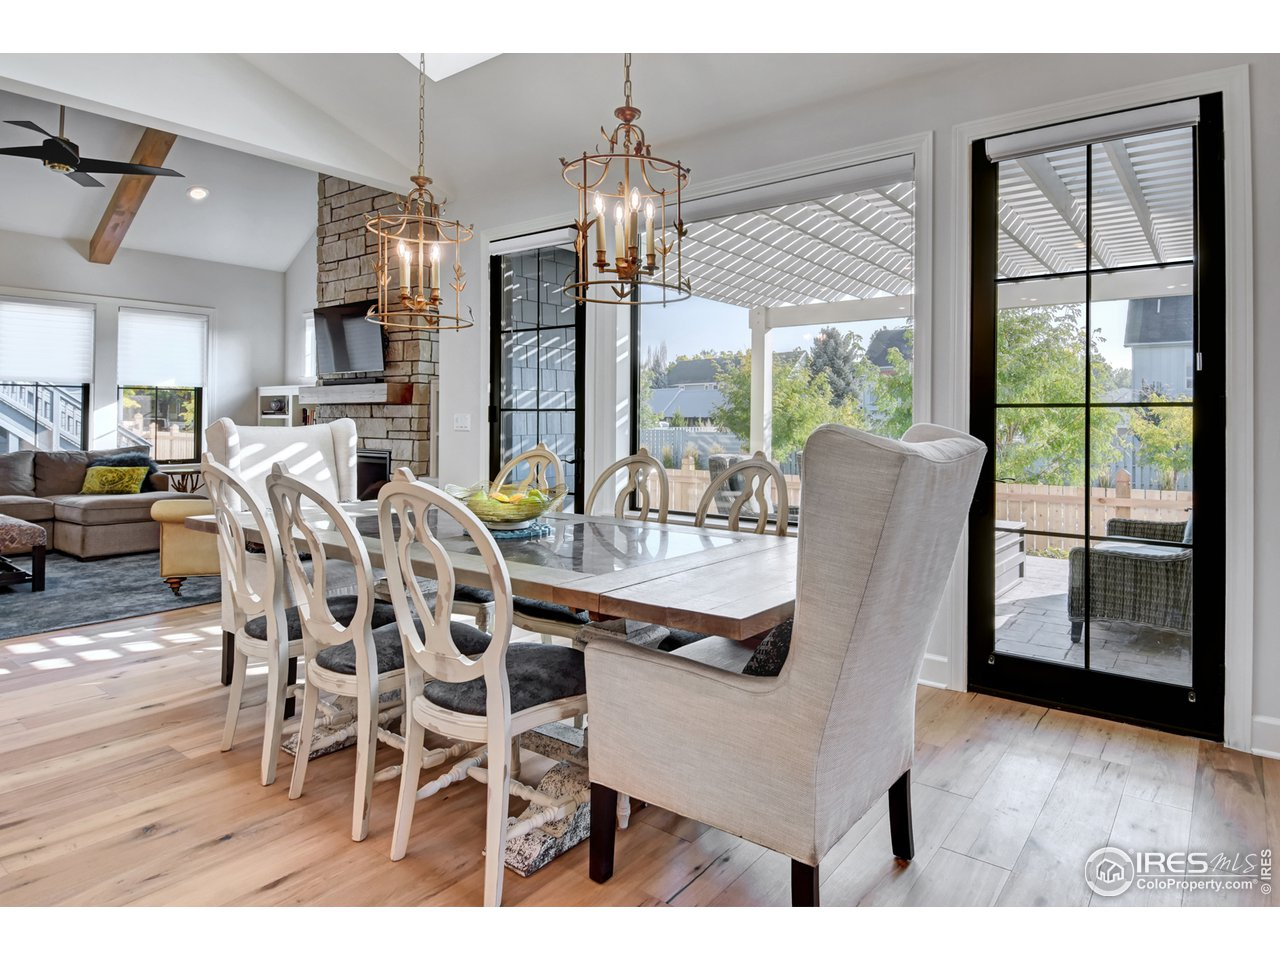 Dining Room opens to covered veranda